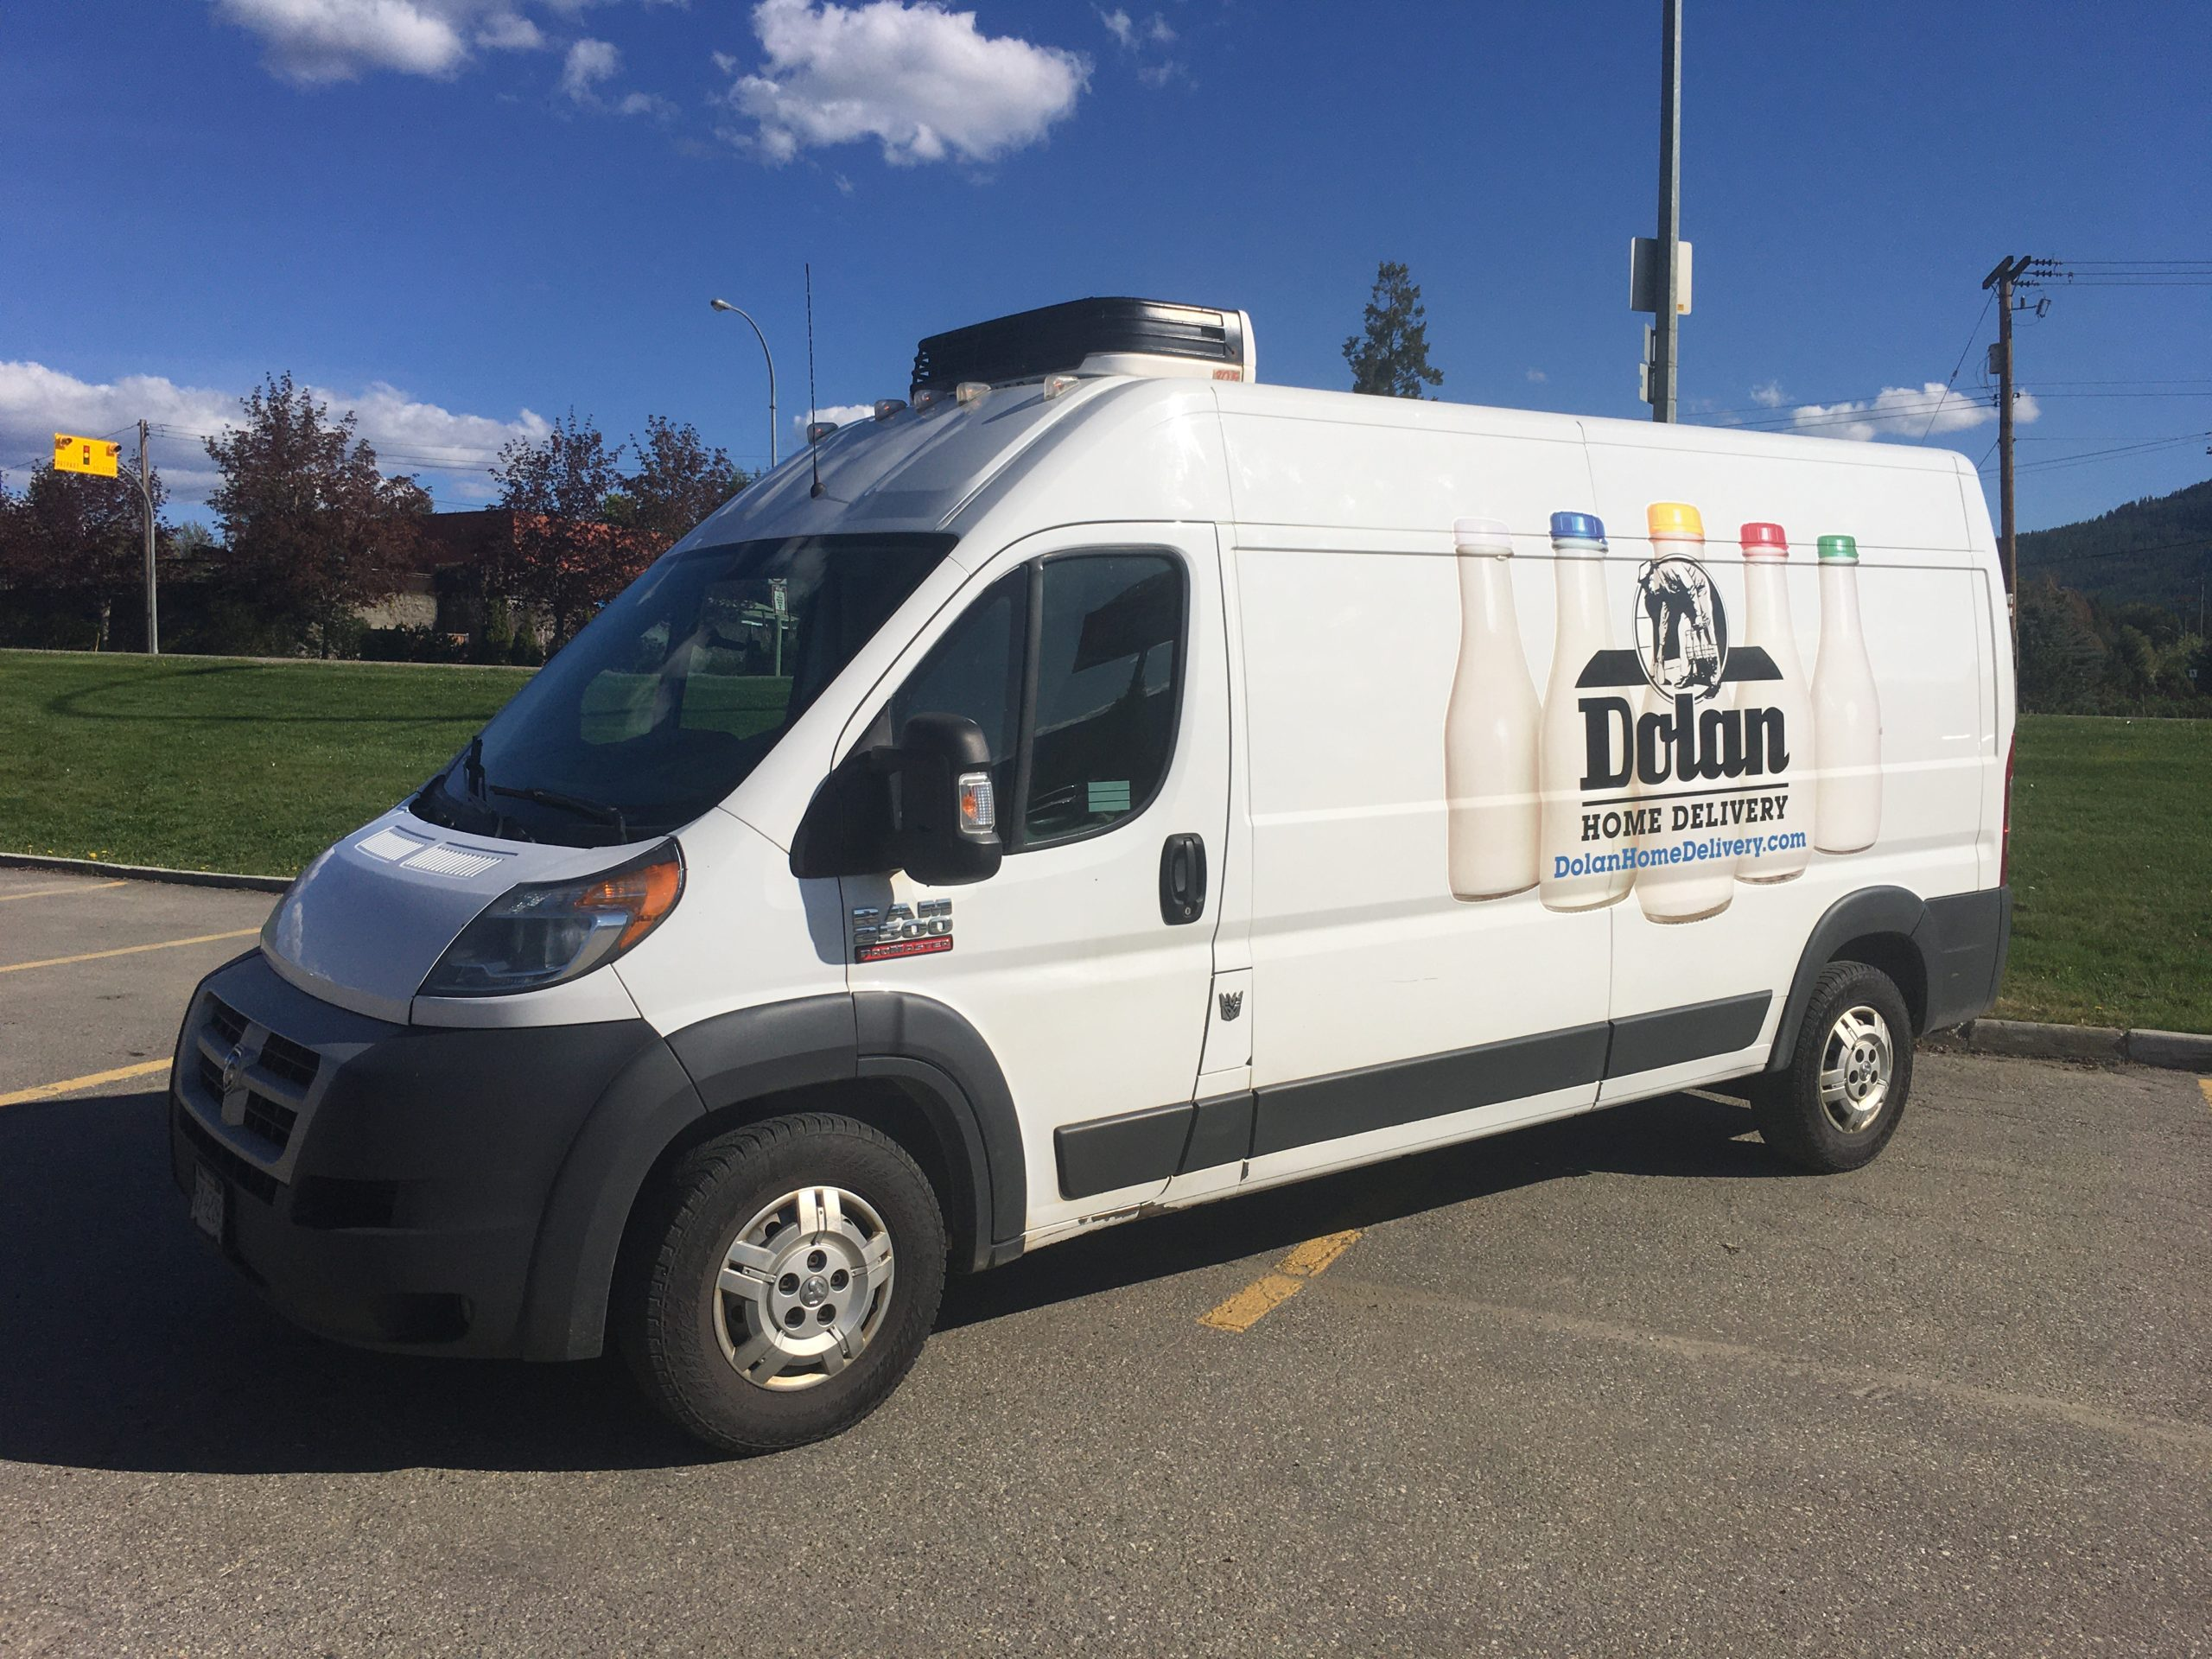 Specialty grocery home delivery company is a business for sale in BC.